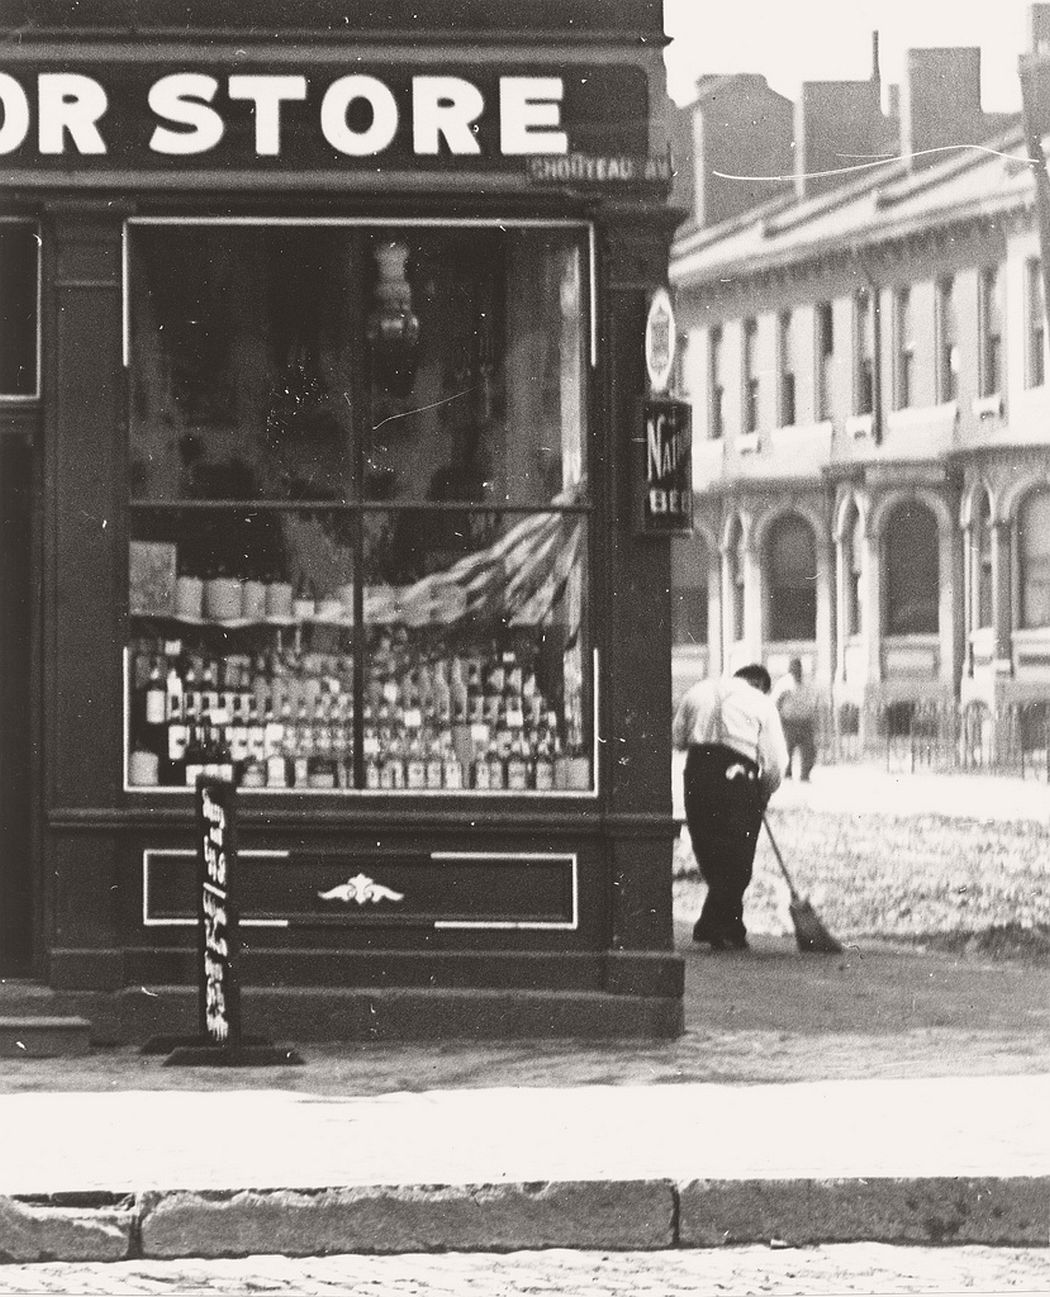 Store front window of a liquor store on Chouteau Avenue, ca. 1900s